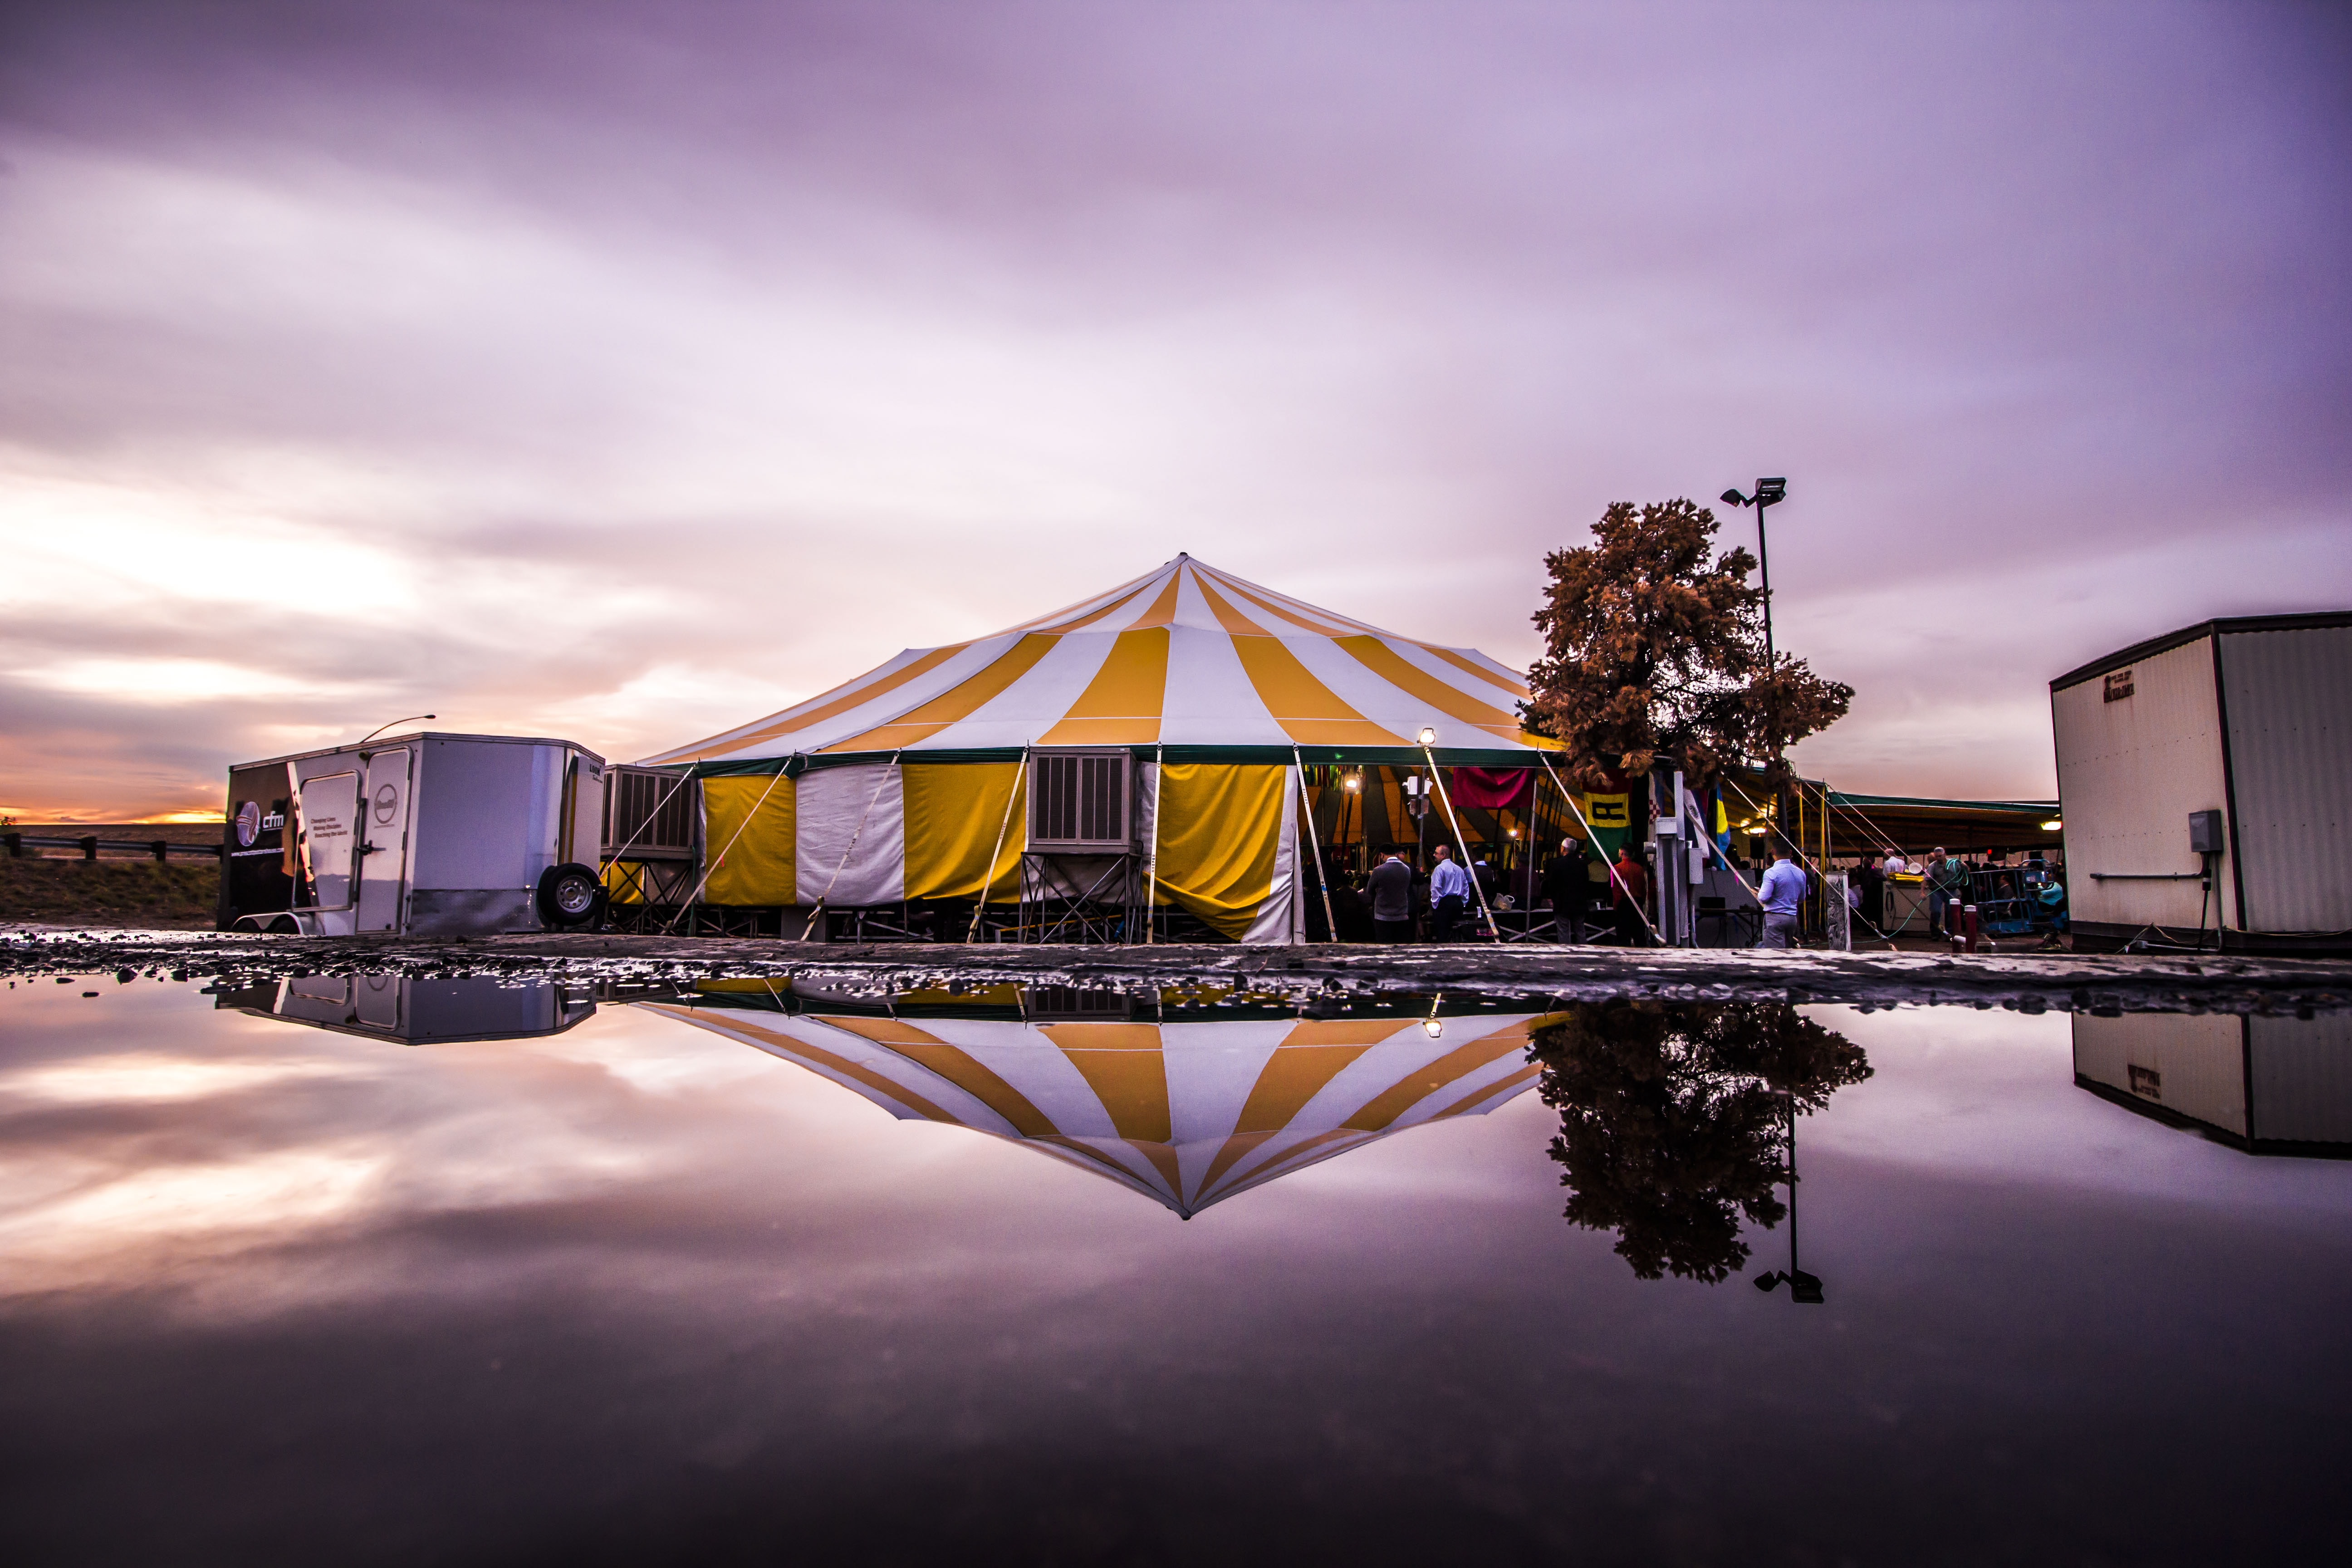 white and yellow striped carnival tent near body of water